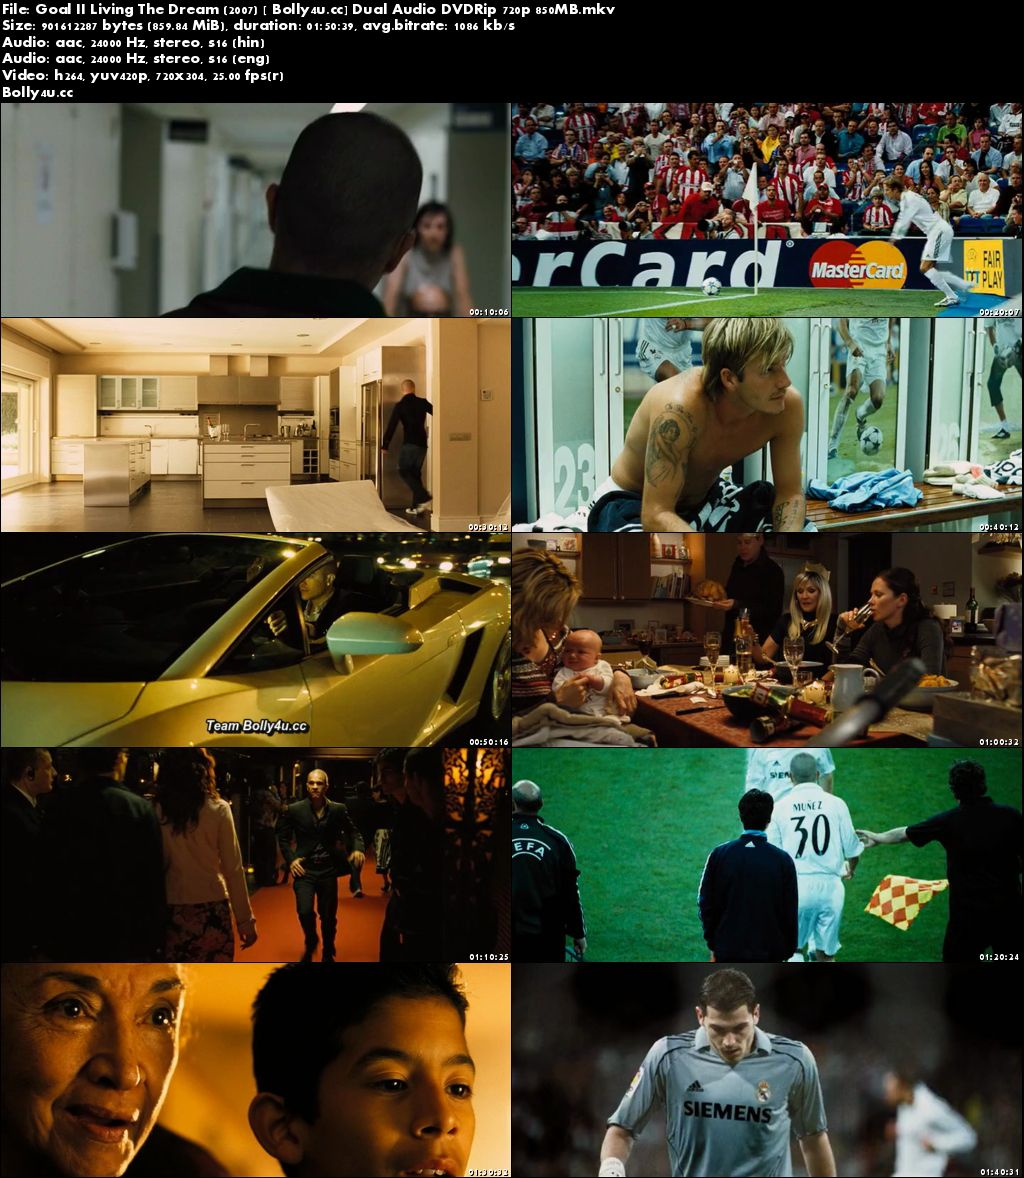 Goal II Living The Dream 2007 DVDRip 350MB Hindi Dual Audio 480p Download